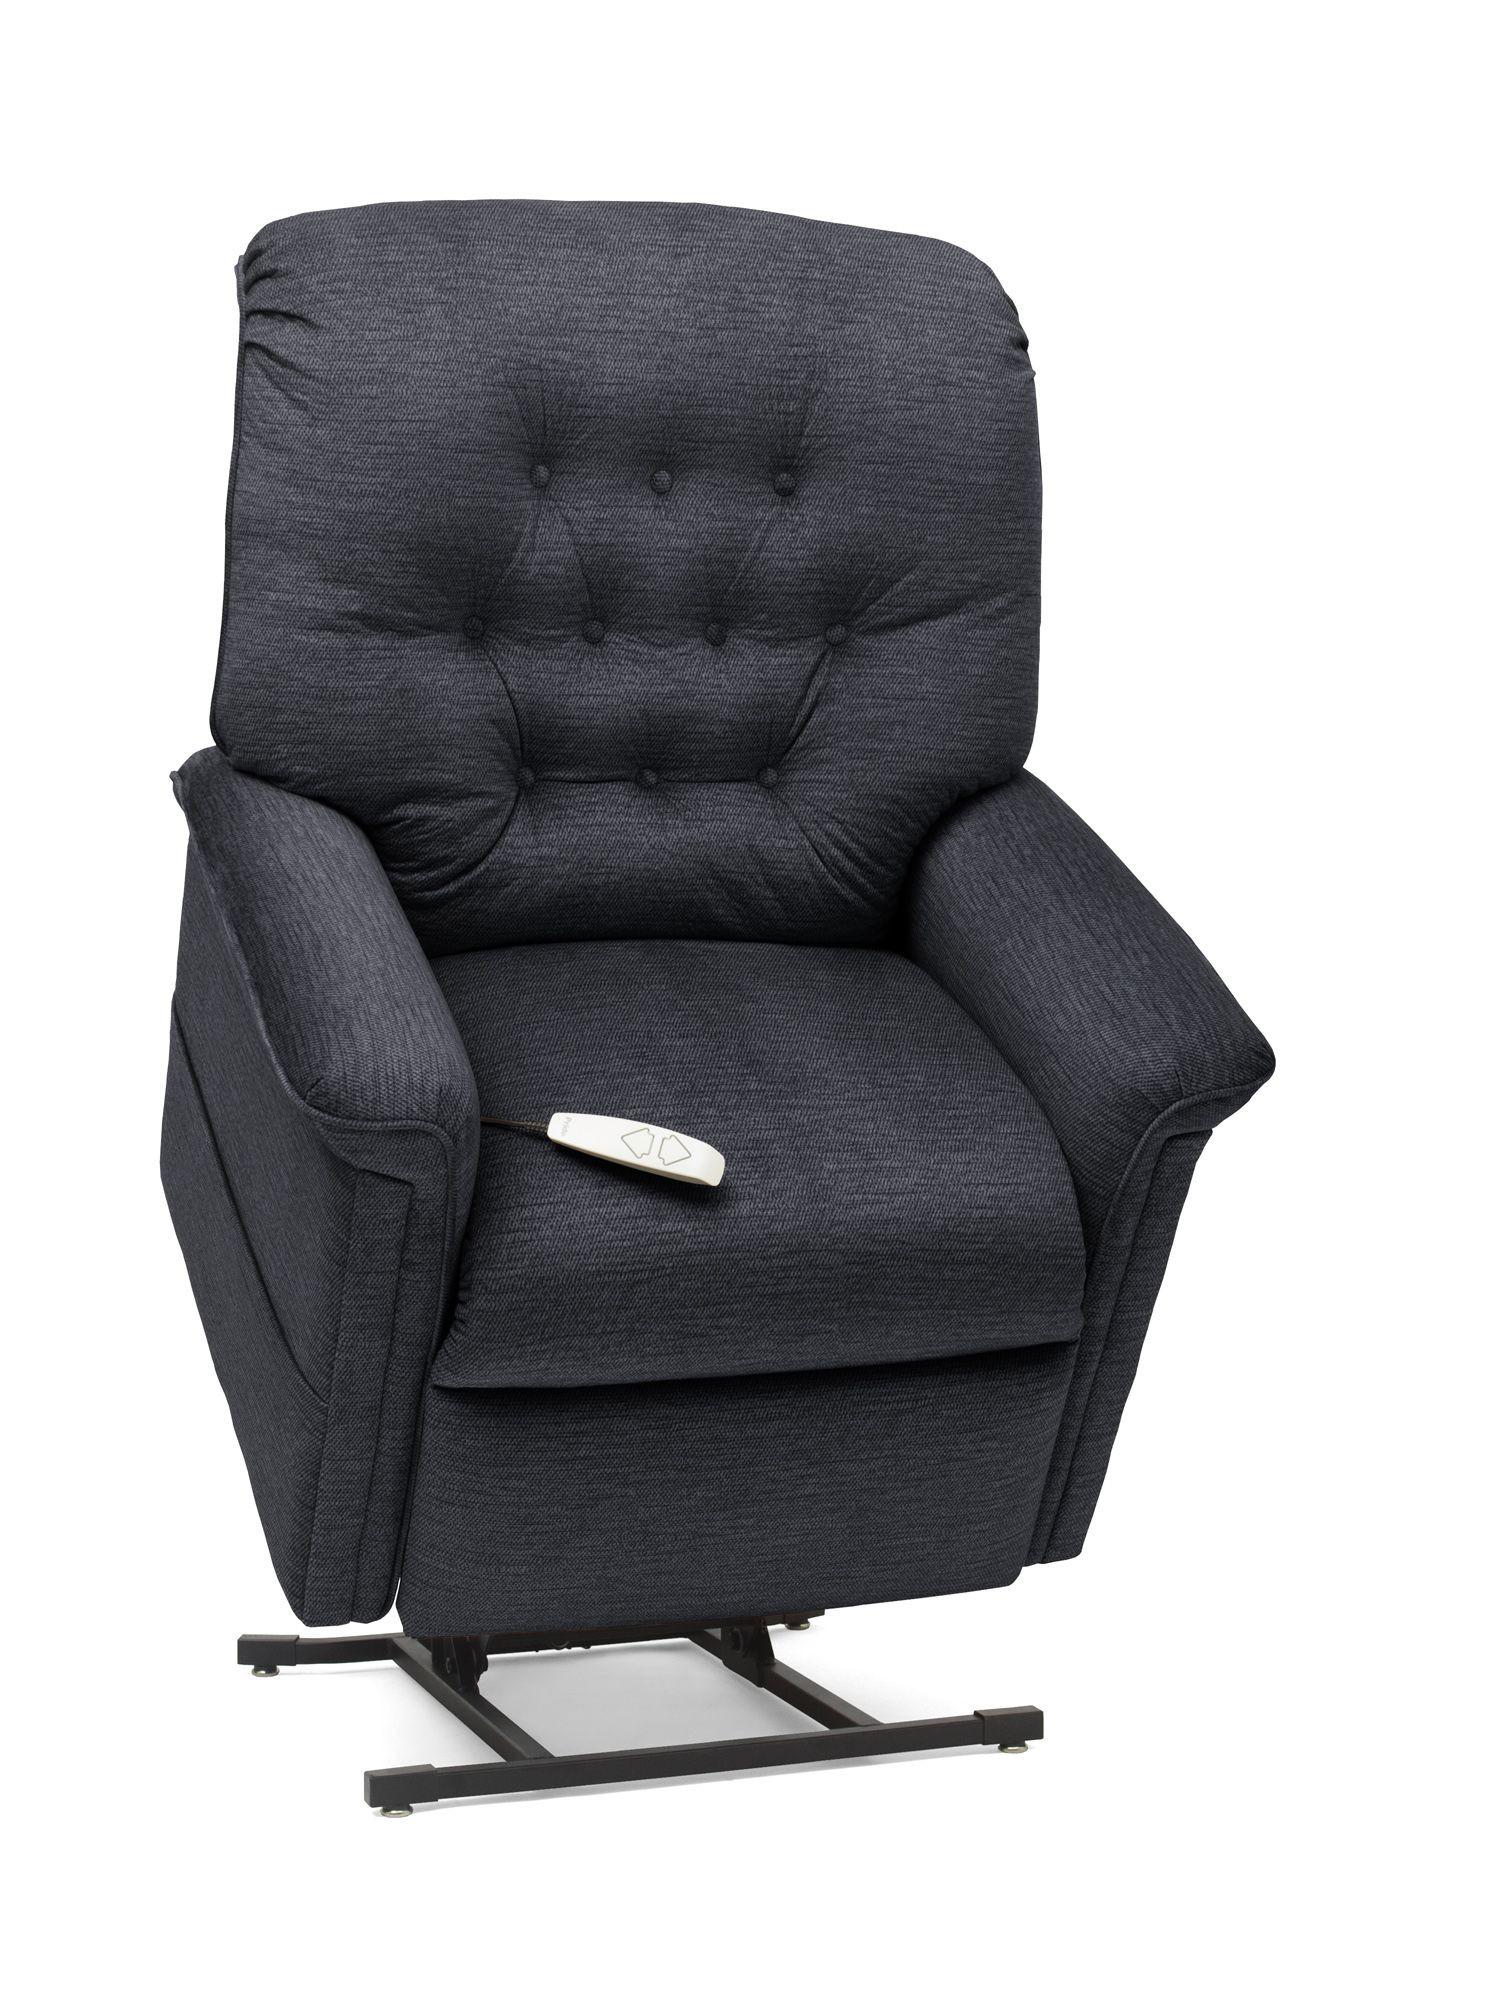 Find Lift Chair Recliner Rental For Cruise Ship Near San Diego, CA